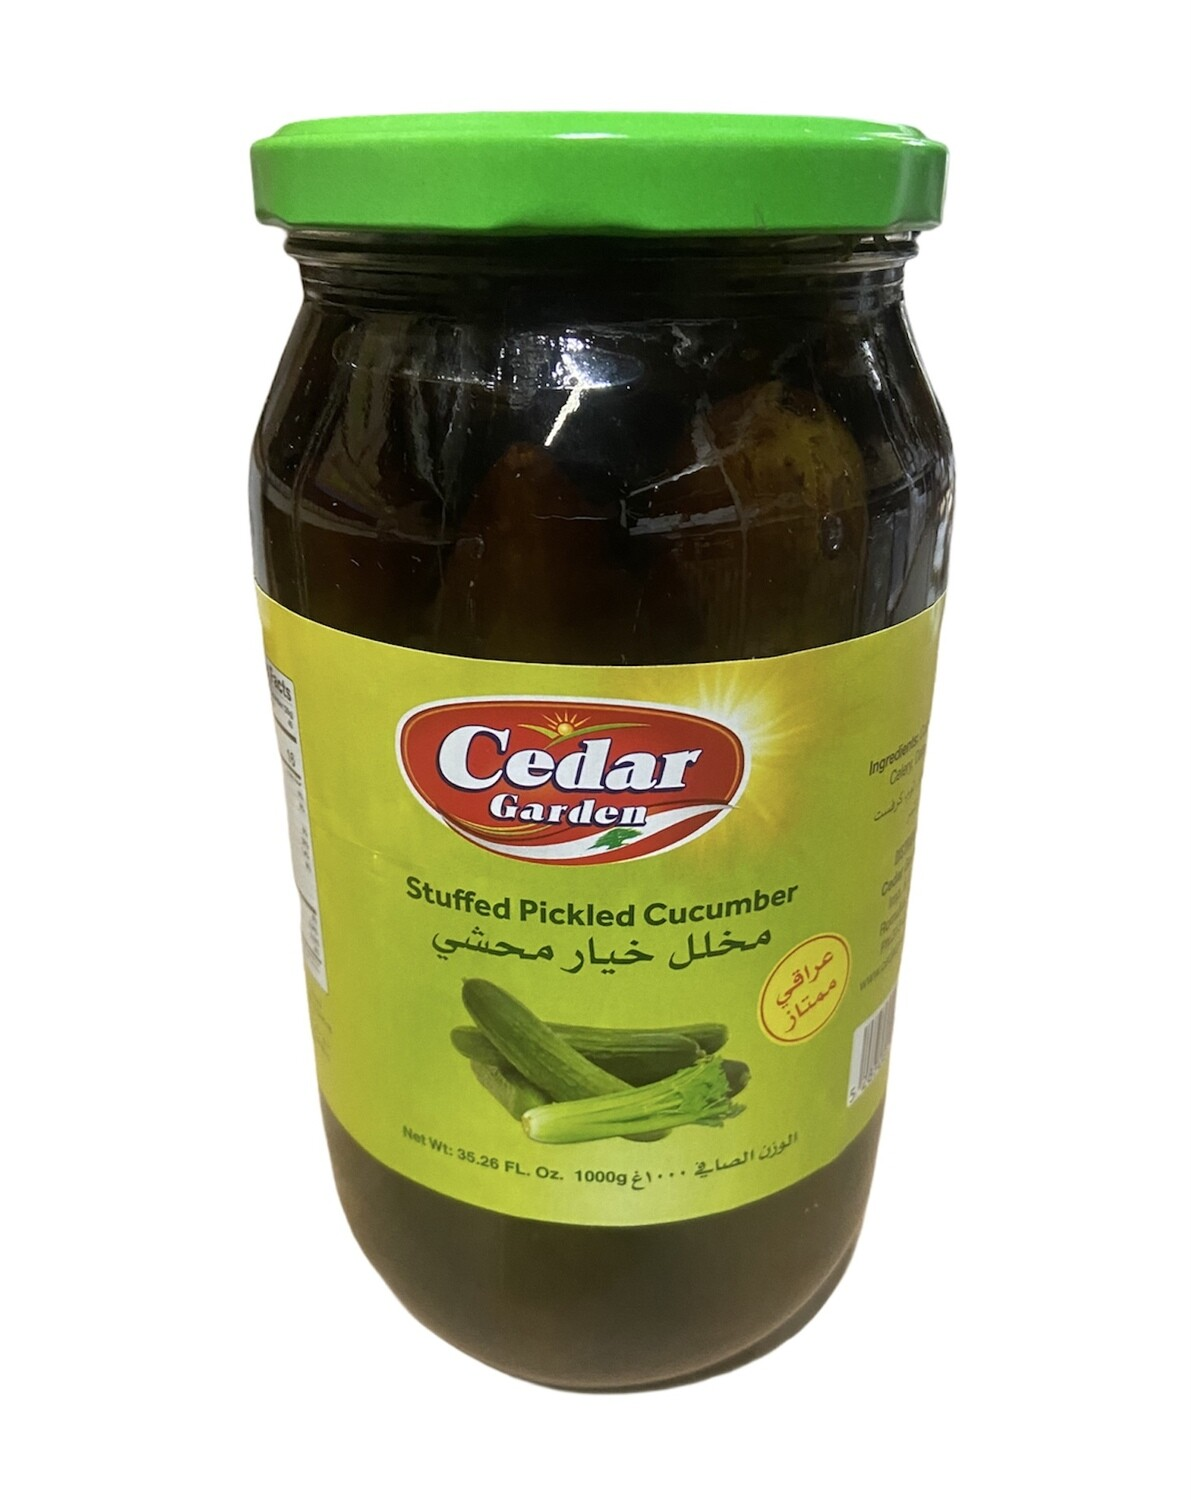 Cedar Garden Stuffed Pickled Cucumber 12x1k